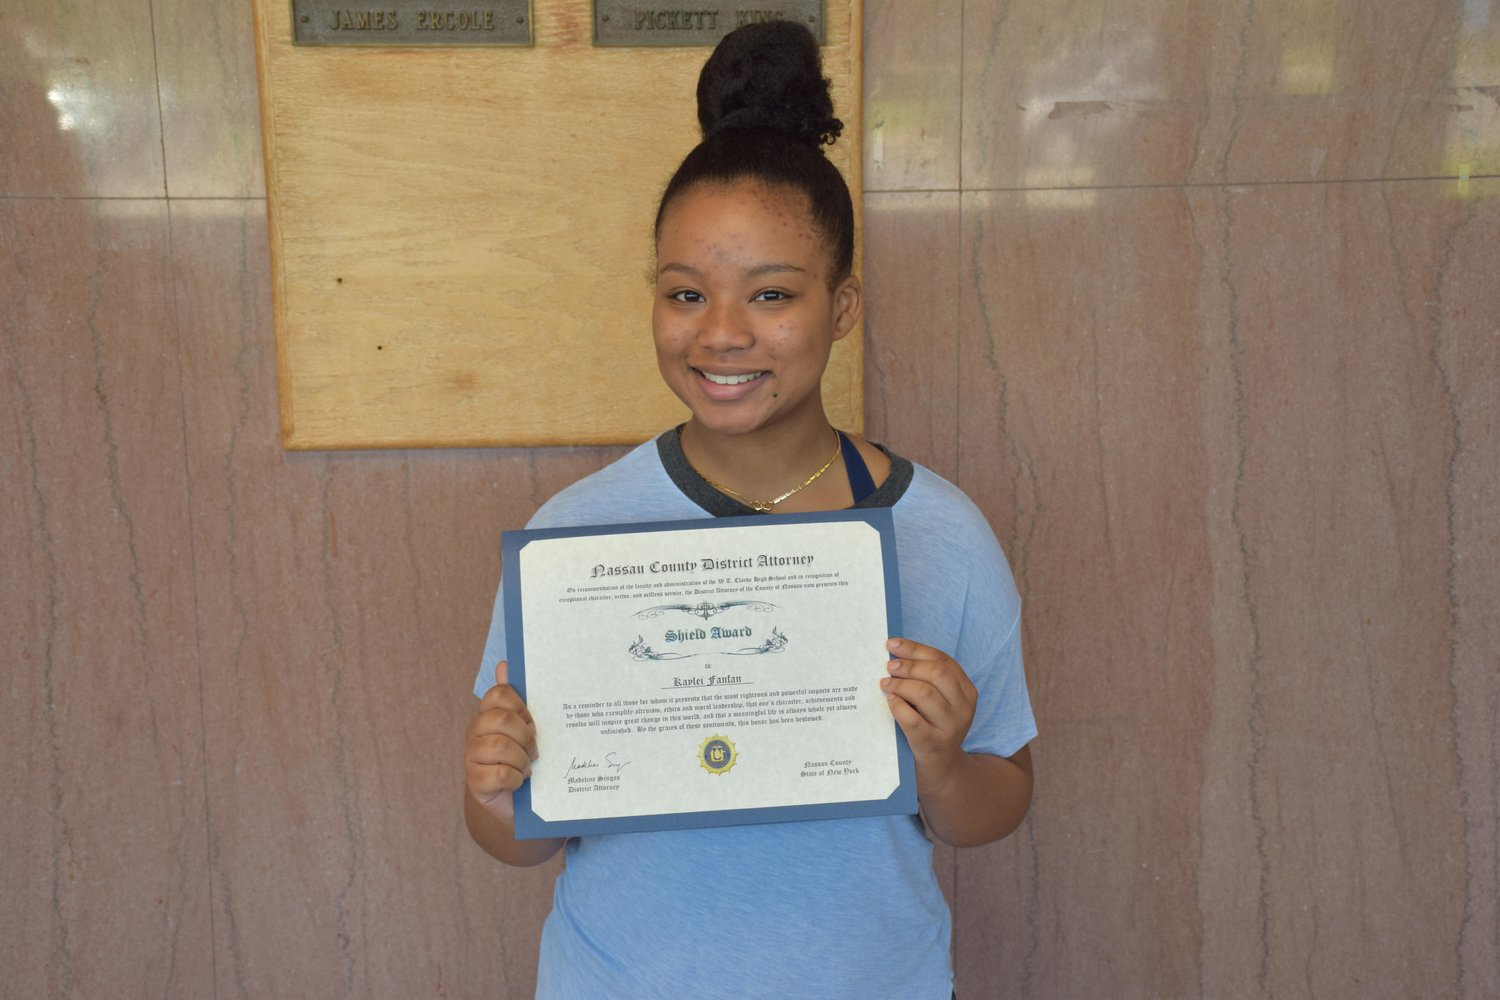 W.T. Clarke High School junior Kaylei Fanfan was recently announced as a recipient of the Nassau County District Attorney's SHIELD Award.